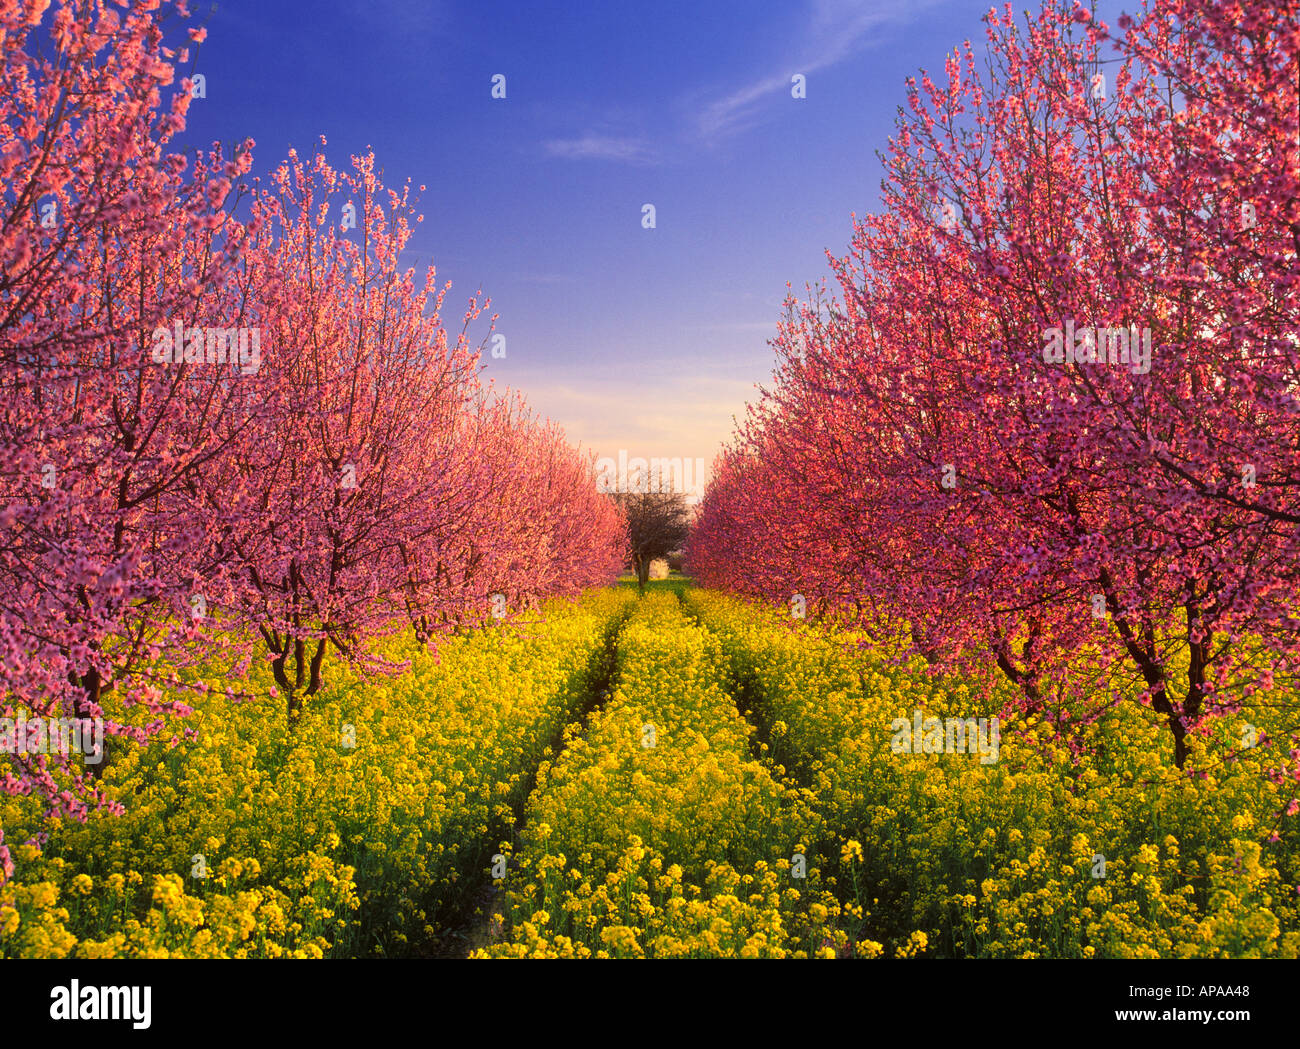 Pink peach blossoms with wild yellow mustard bloom in a peach orchard - Stock Image